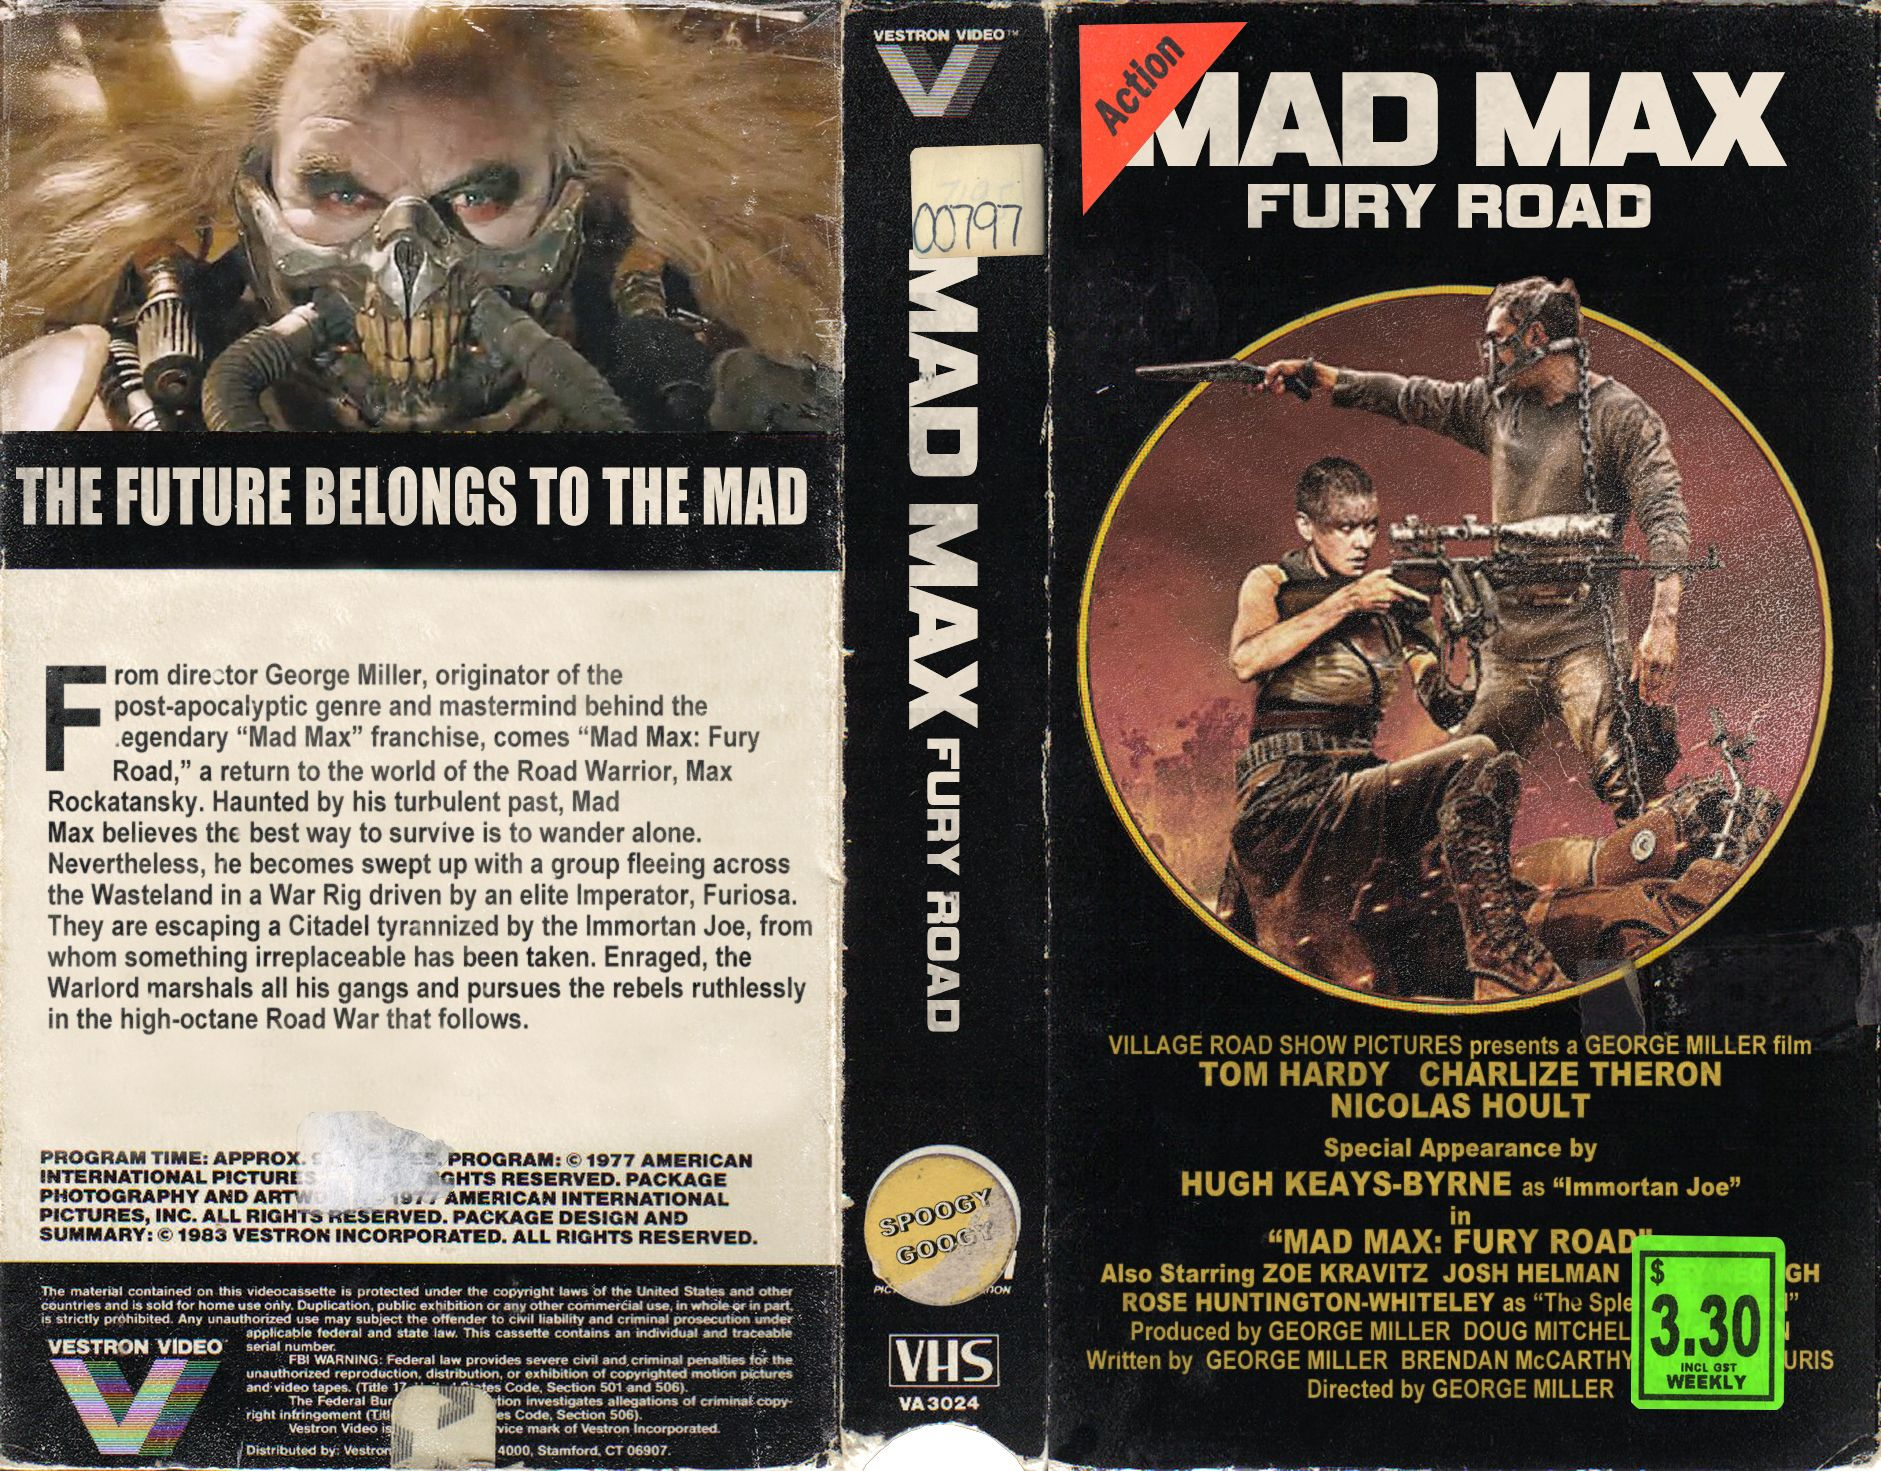 Mad Max Fury Road Vhs Cover Art Mad Max Fury Road Book Cover The Road Warriors